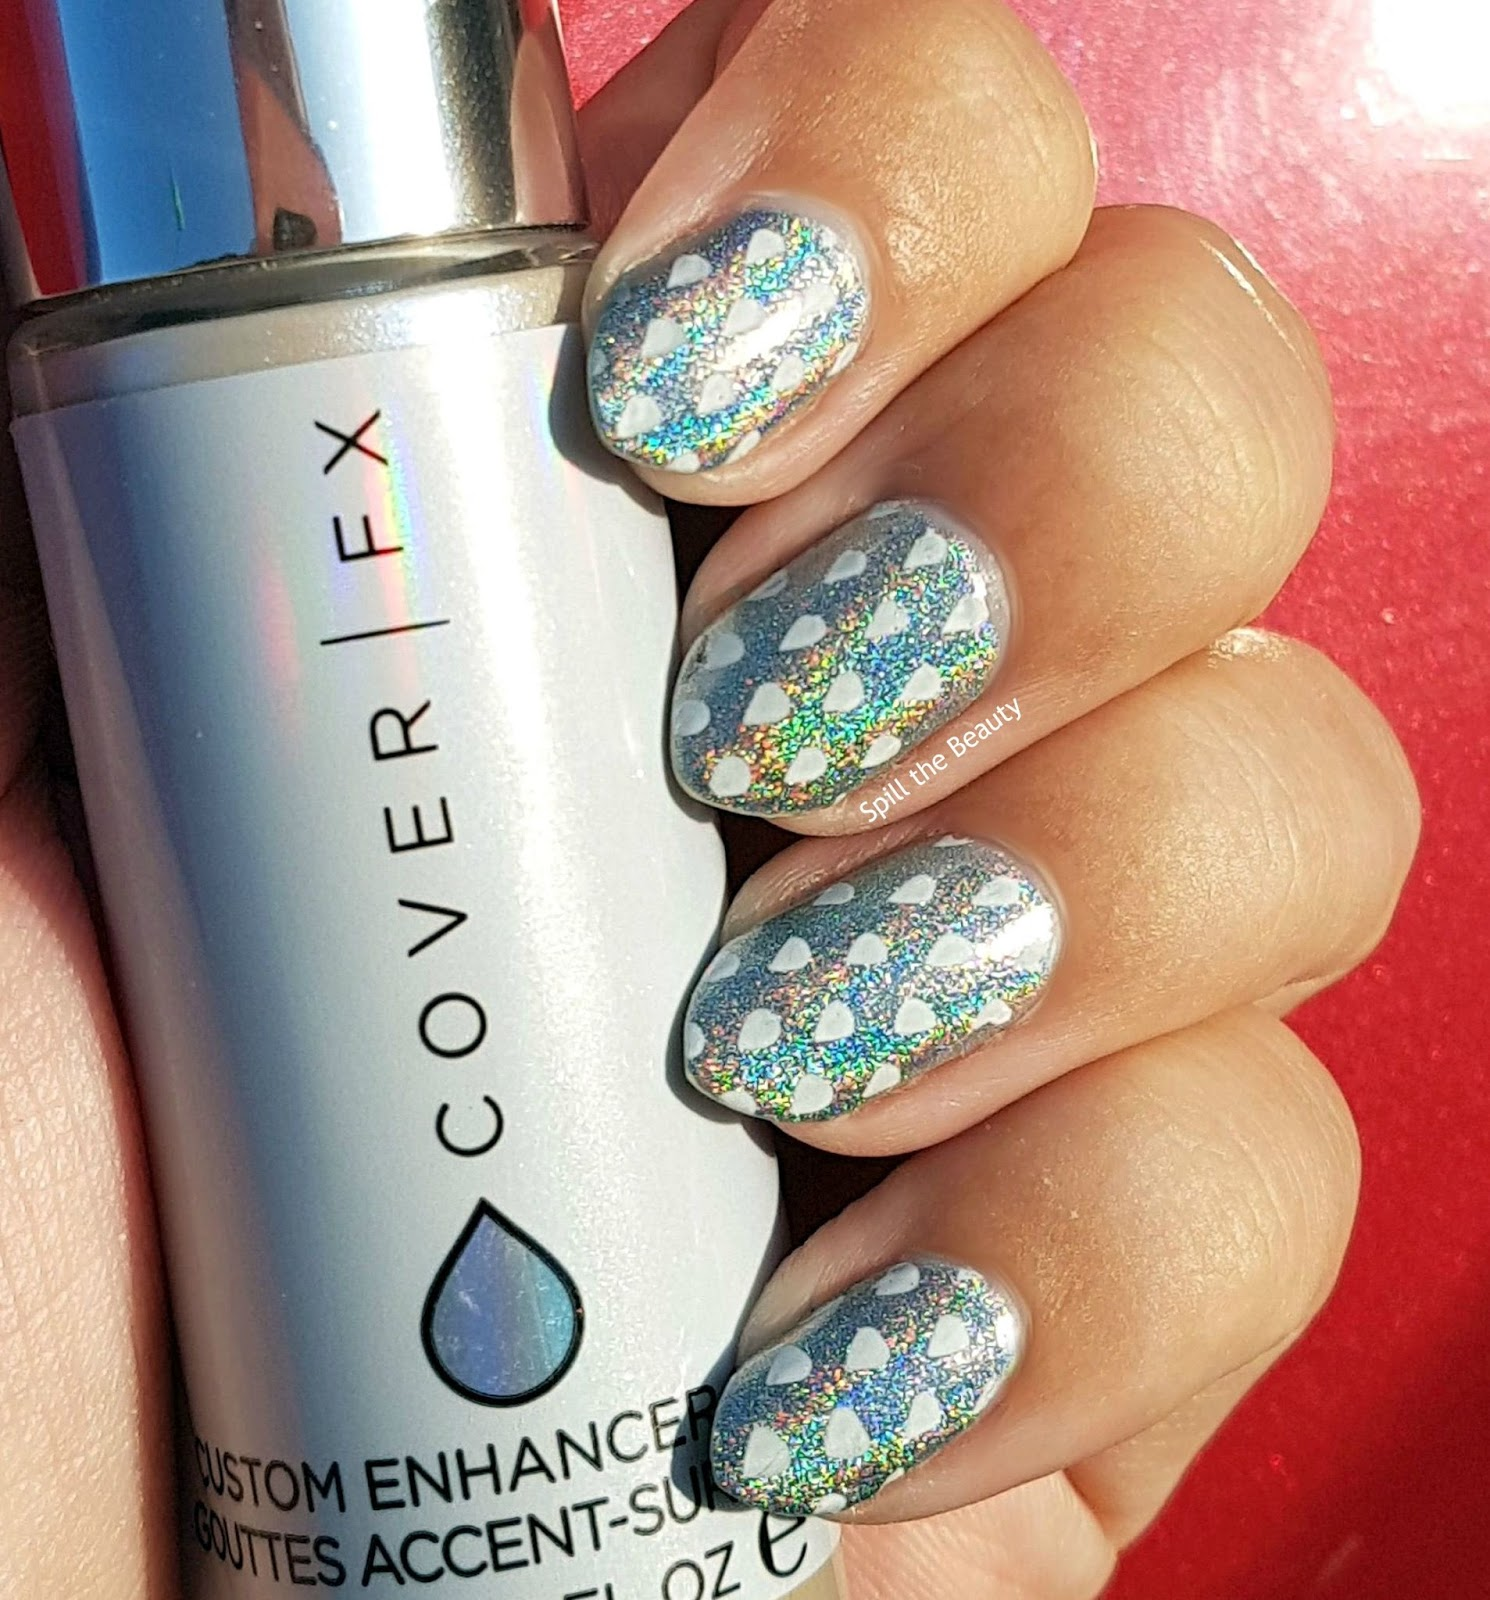 cover fx custom enhancer drops nail art